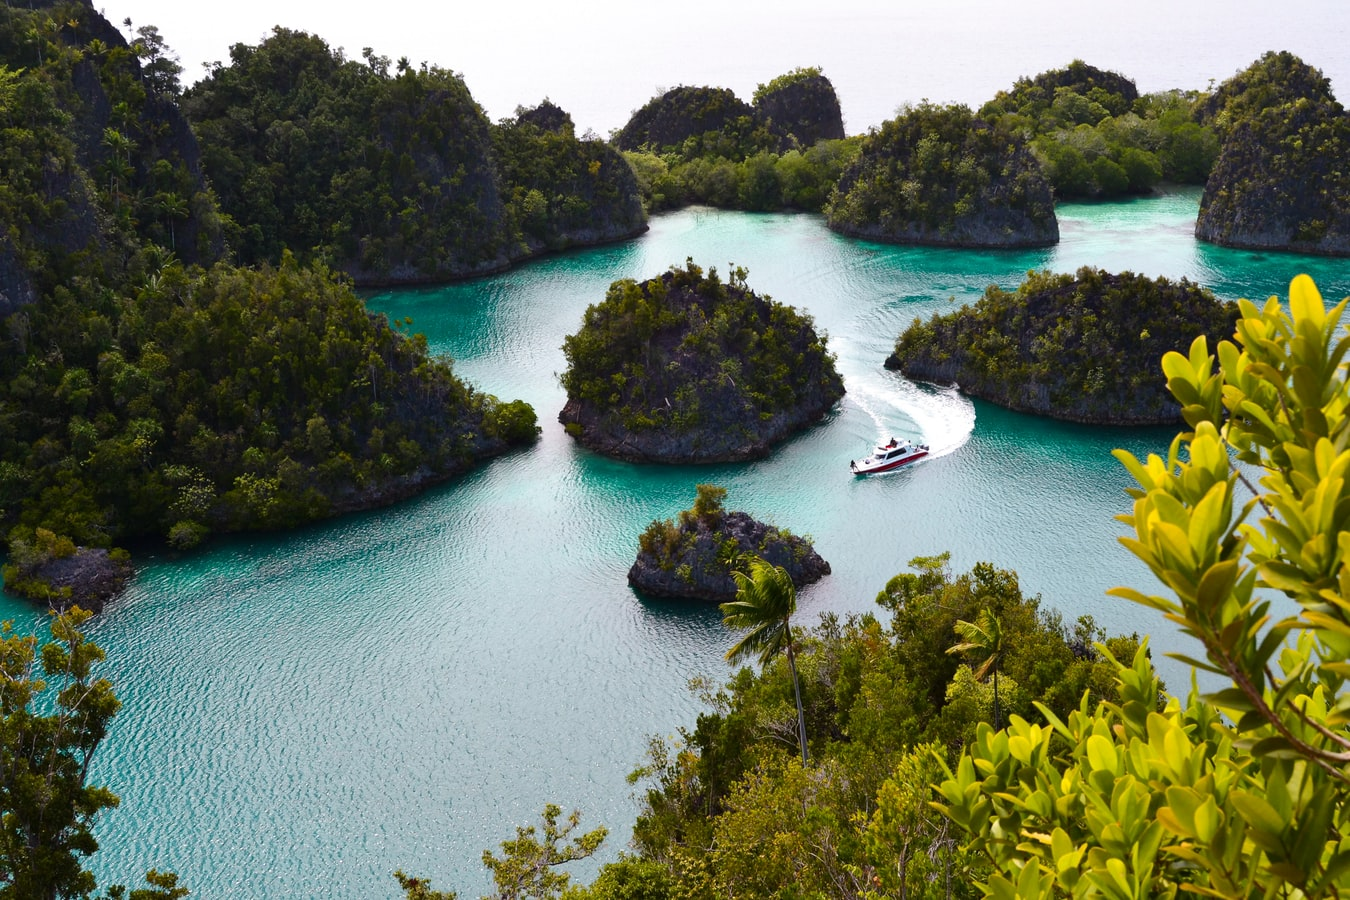 raja ampat islands, indonesian islands to visit, islands in indonesia, indonesian islands map, indonesian islands list, how many islands in indonesia